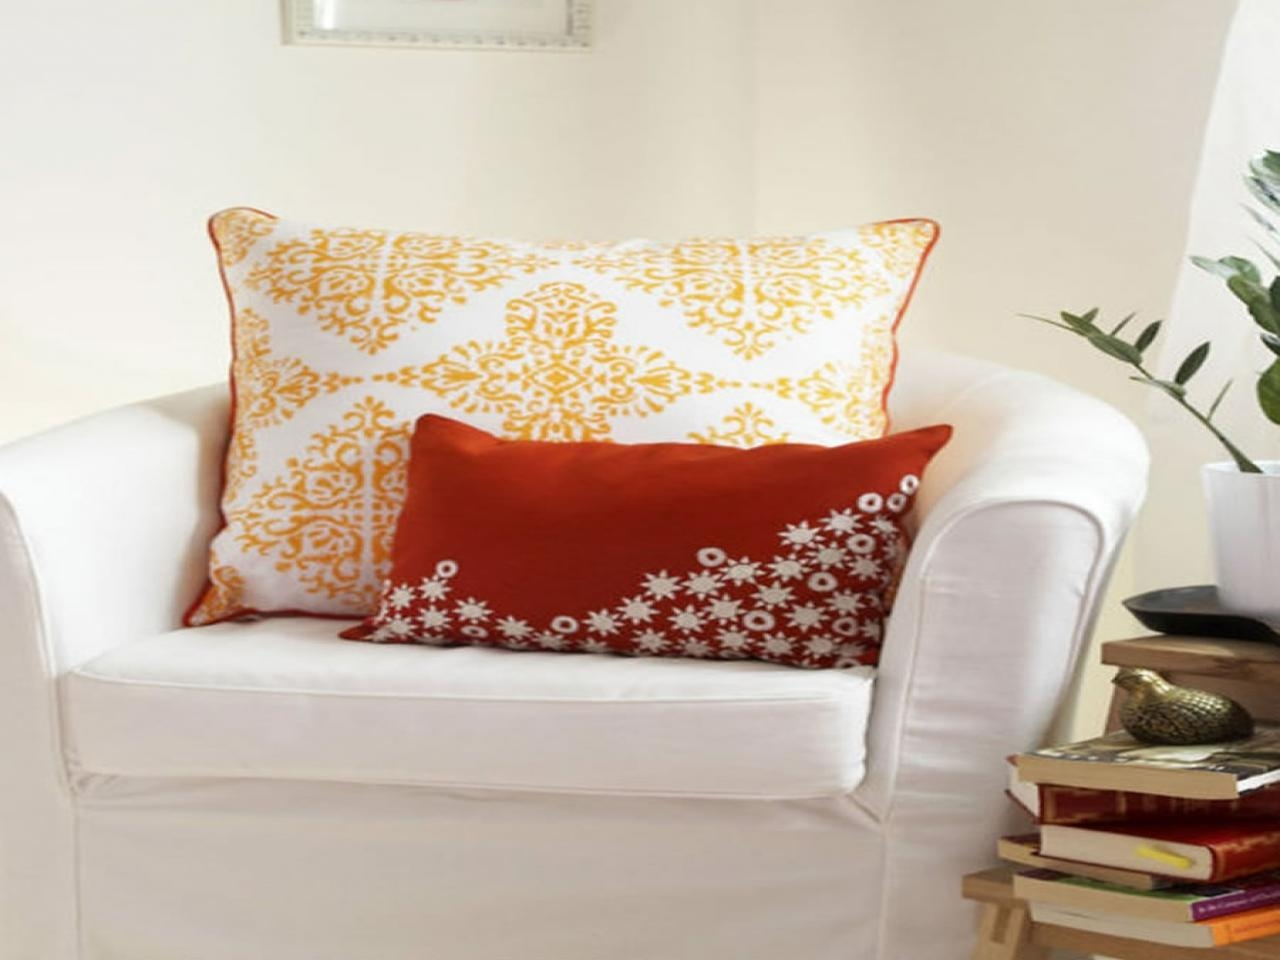 Sofa Accessories With Design Photo 15073 | Kengire Within Sofa Accessories (Image 17 of 20)